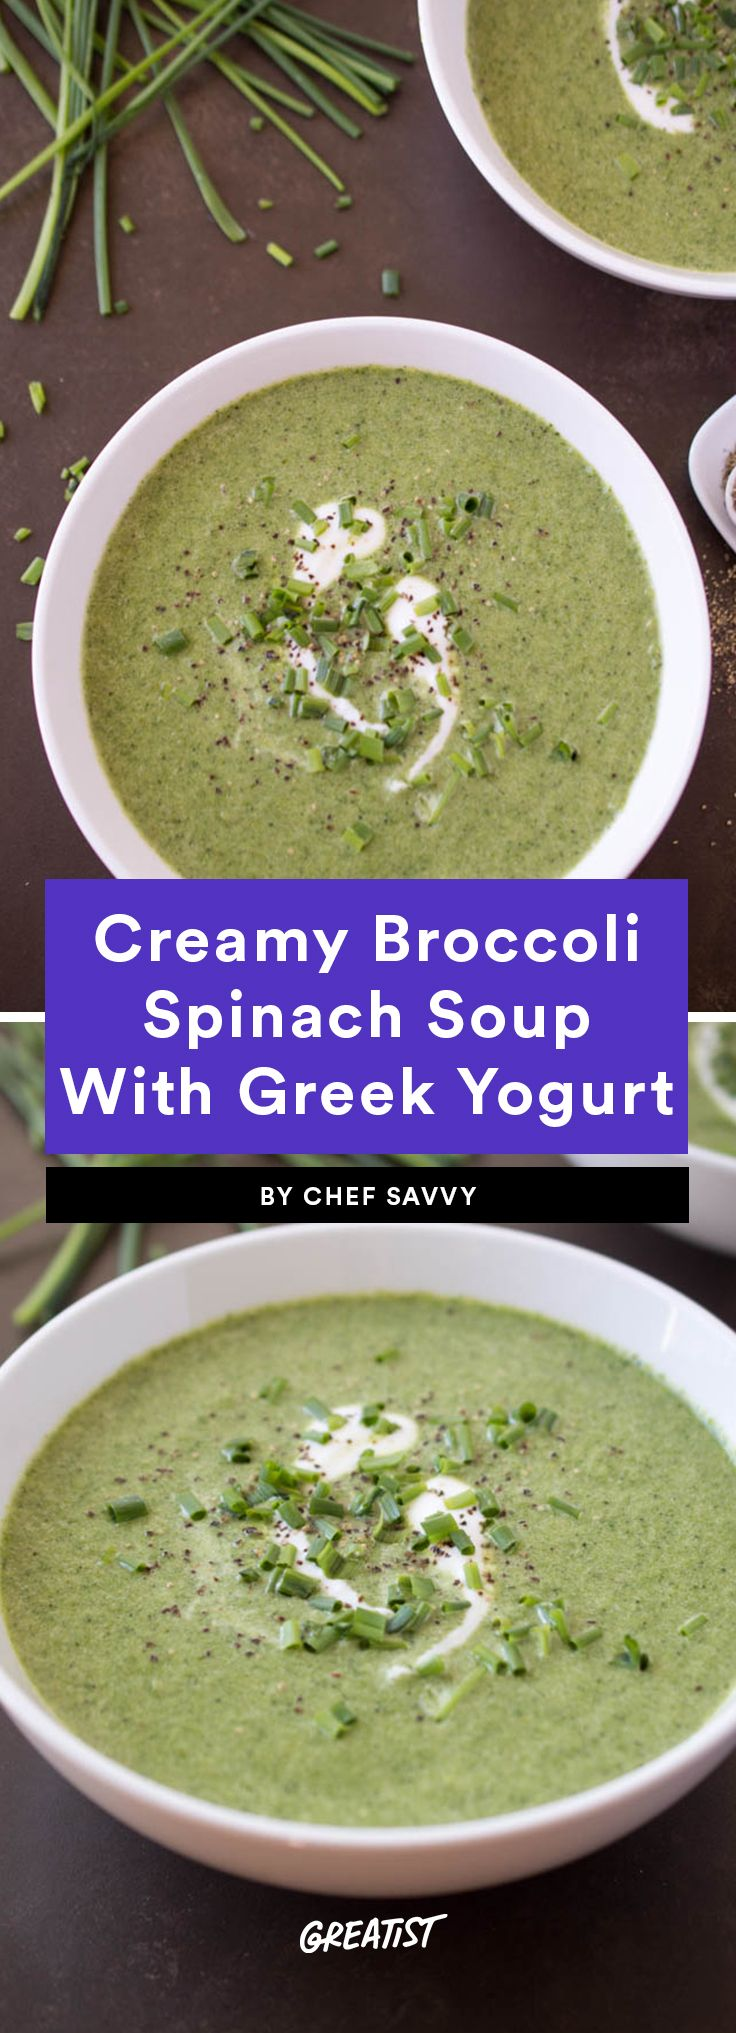 11 Ways to Use Up That Bag of Spinach Before It Goes Bad #spinachsoup